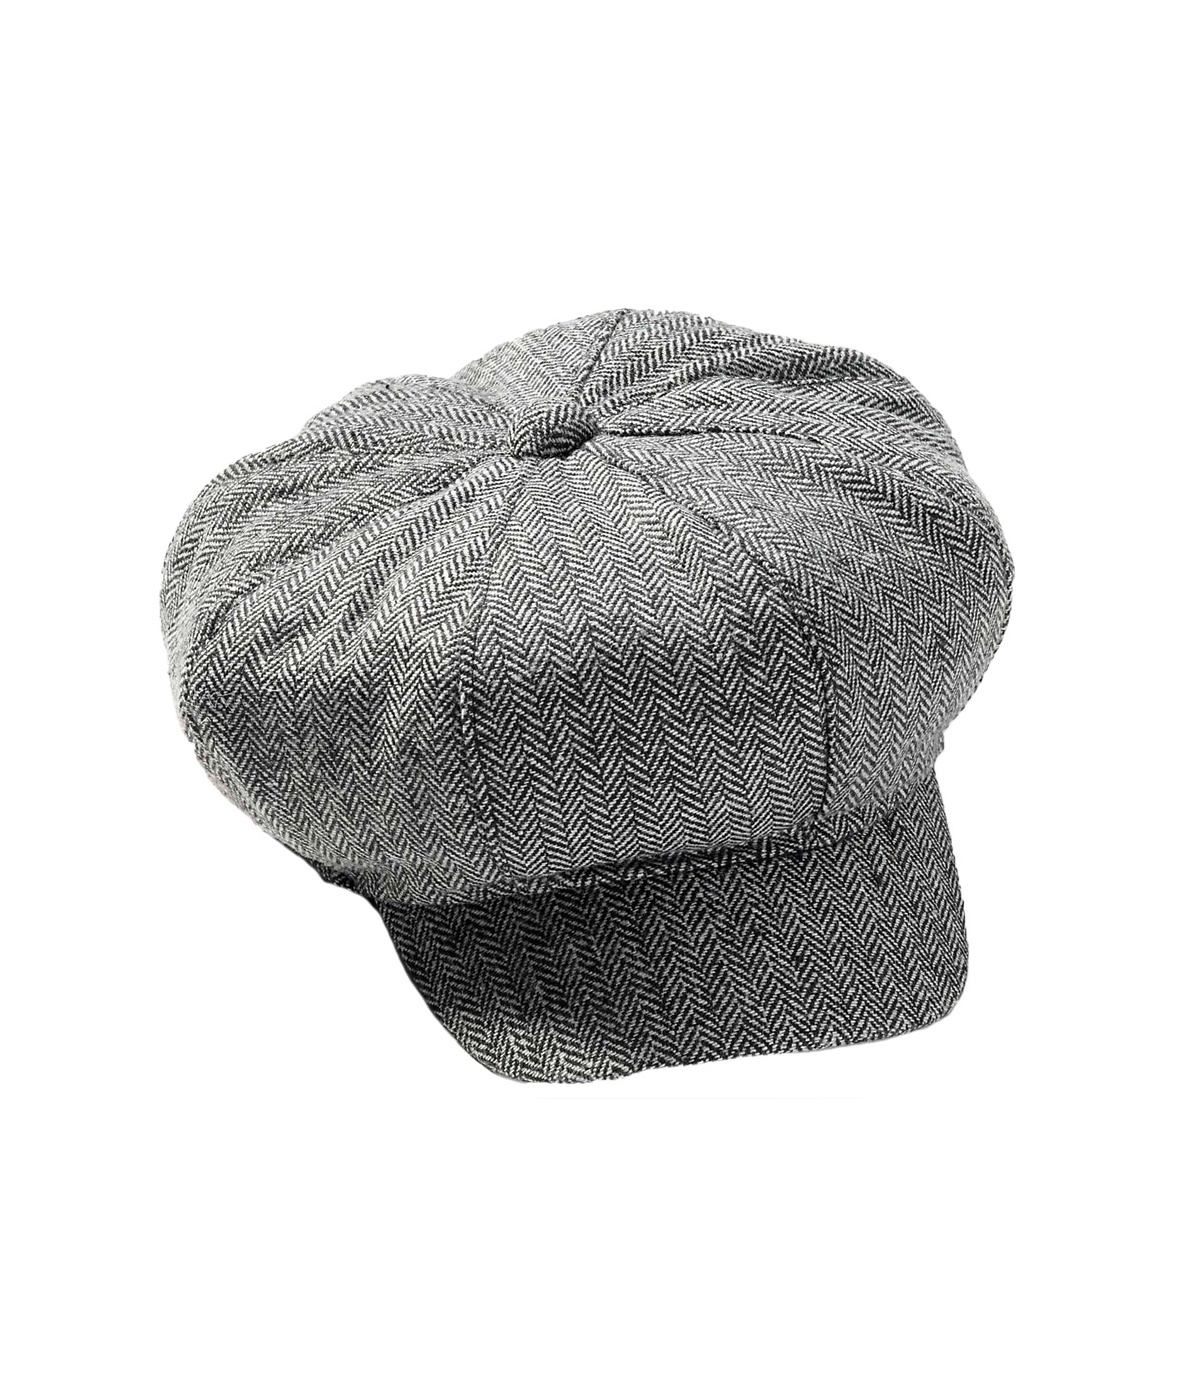 1920s Newsboy Hat - Hats b7f8786ad5c